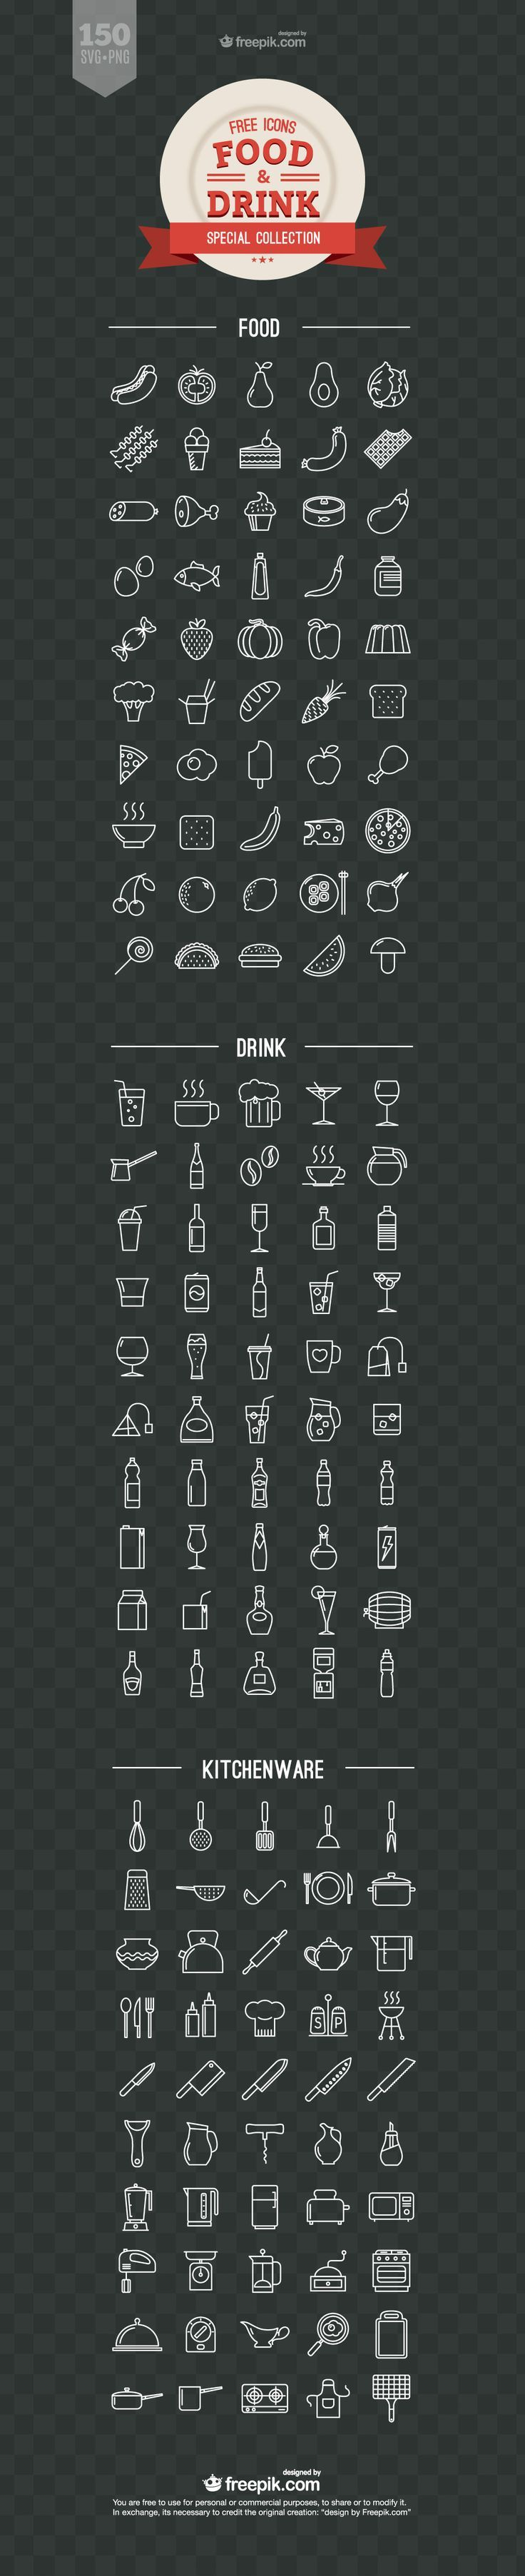 Food and Drink Free Vector Icons | https://lomejordelaweb.es/